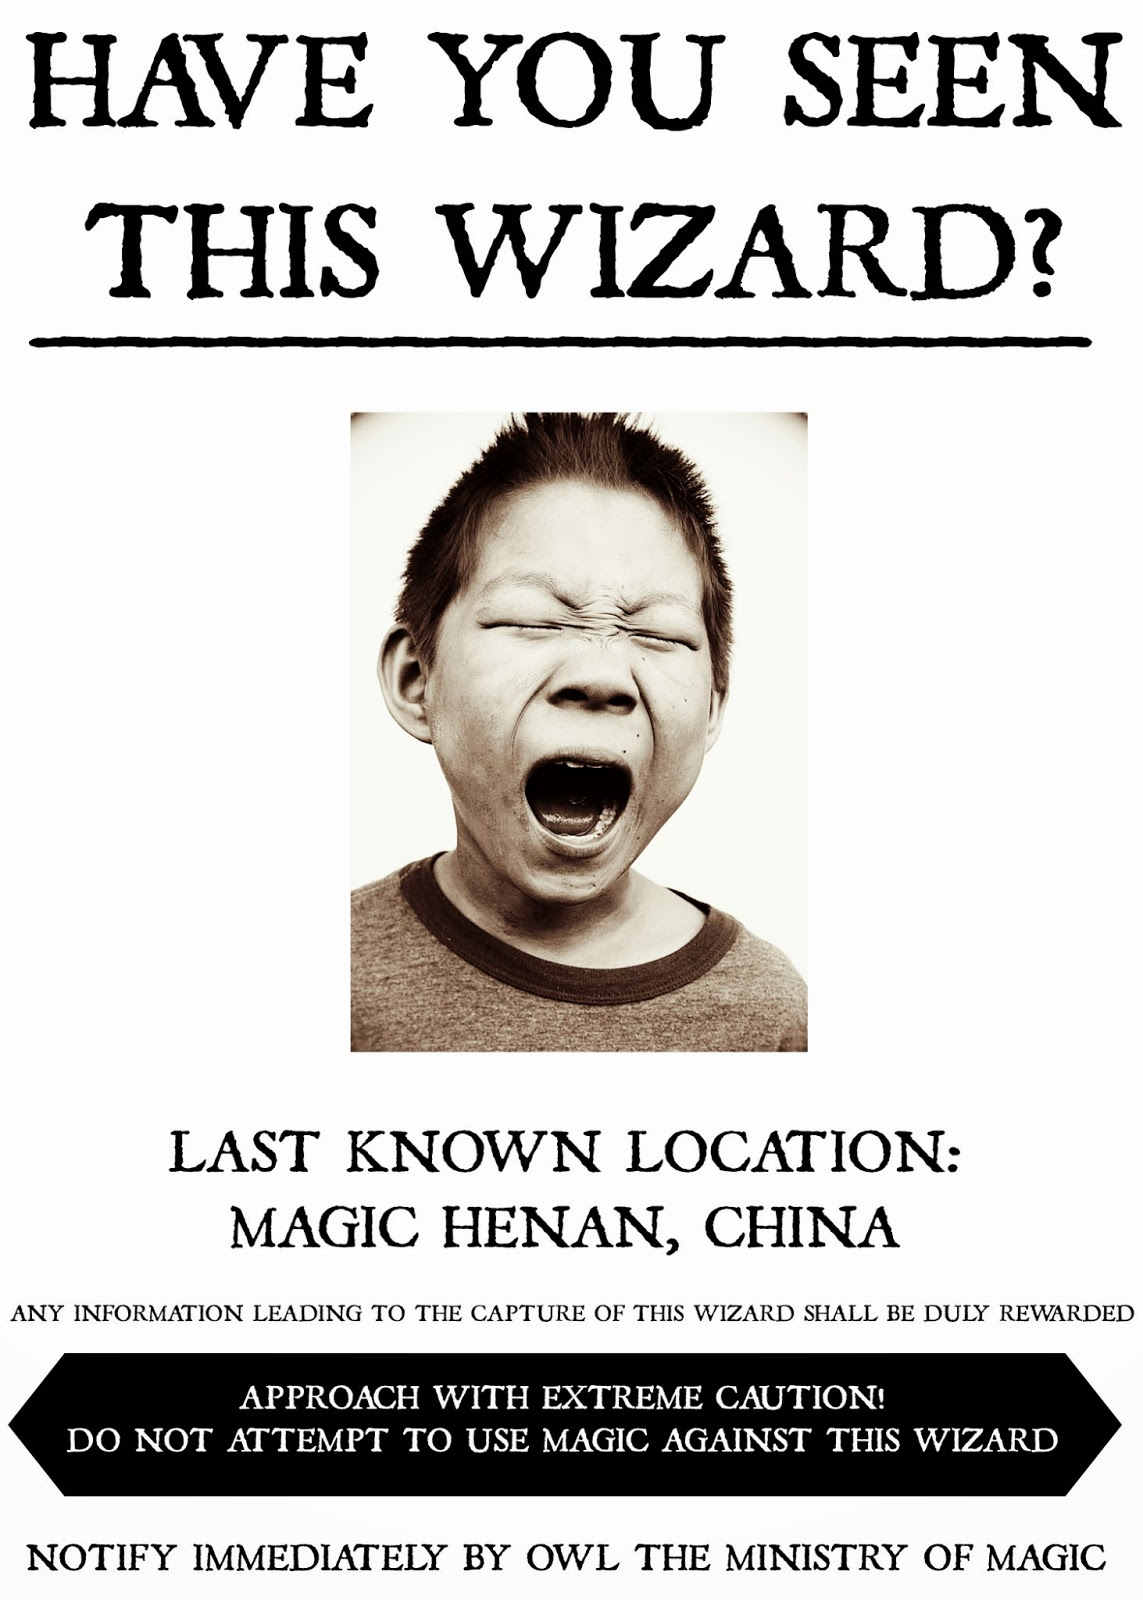 AFTERNOON FIKA DIY HARRY POTTER WANTED POSTERS – Wanted Criminal Poster